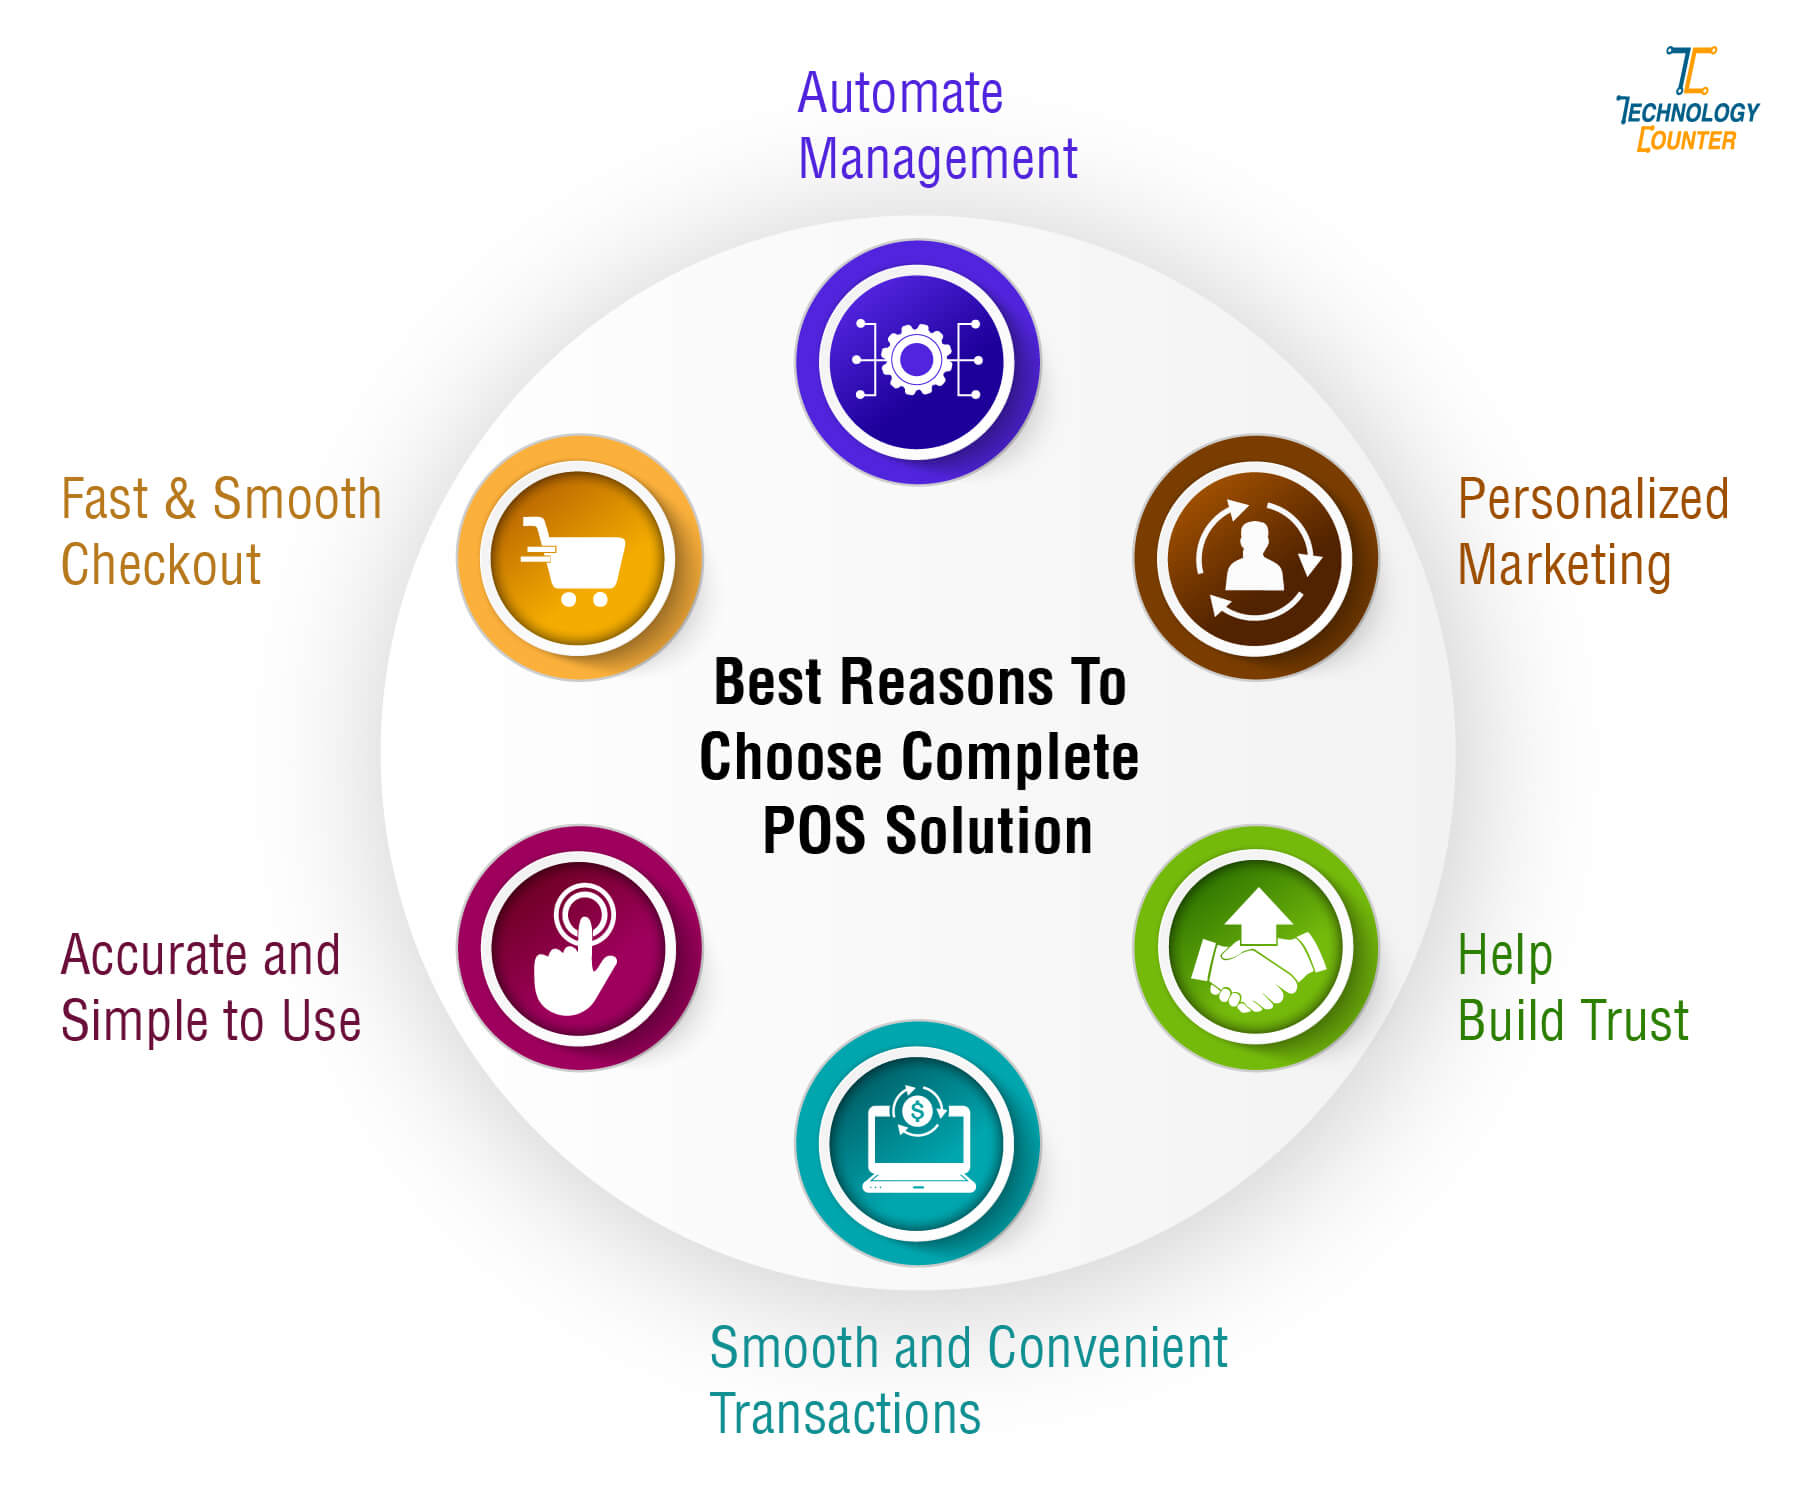 Best Reasons To Choose Complete POS Solution